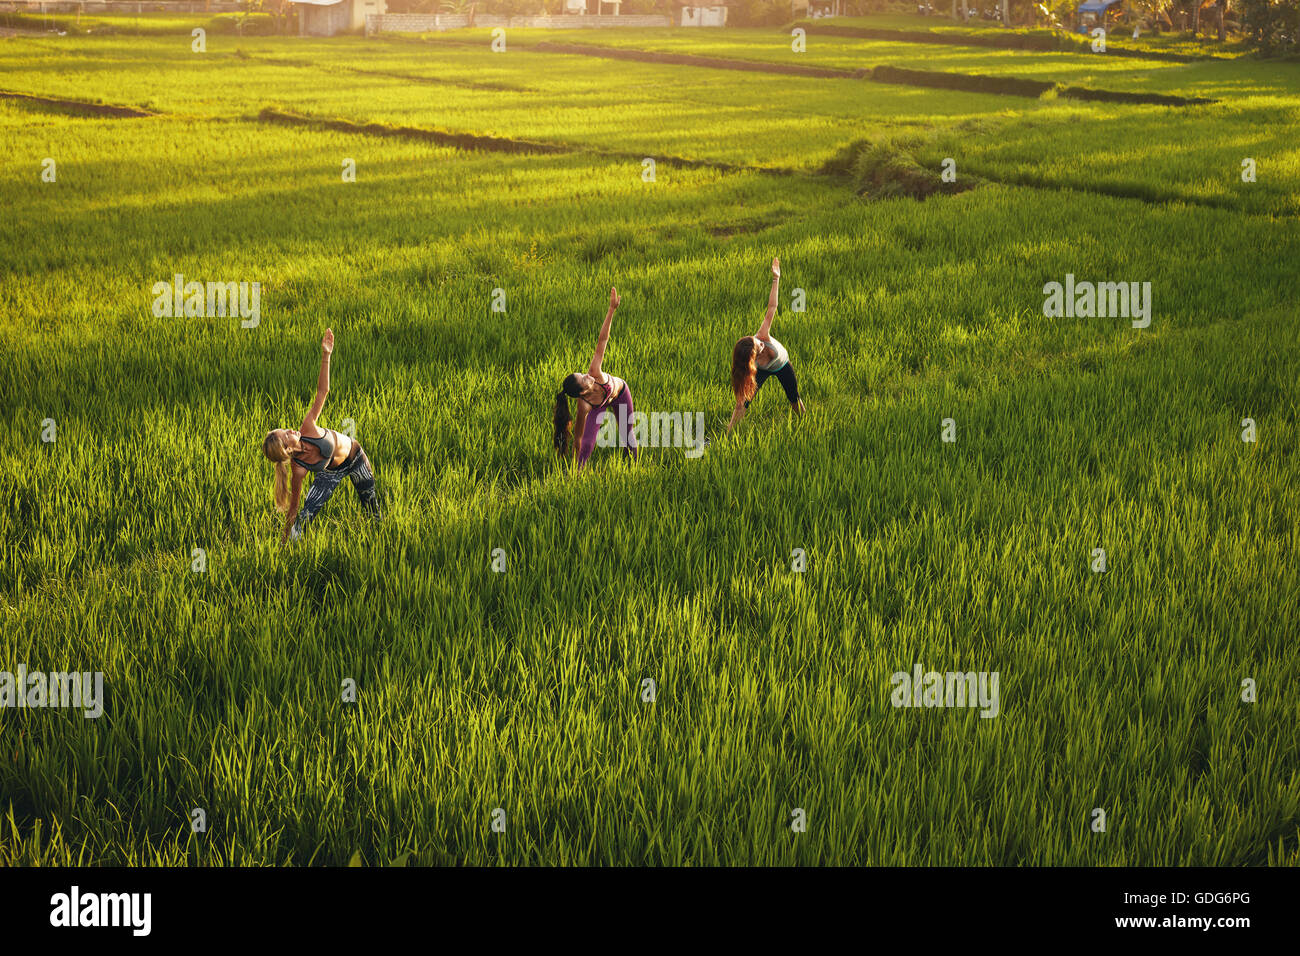 Outdoor shot of young people exercising in farm. Three young women working out in green farm land. - Stock Image